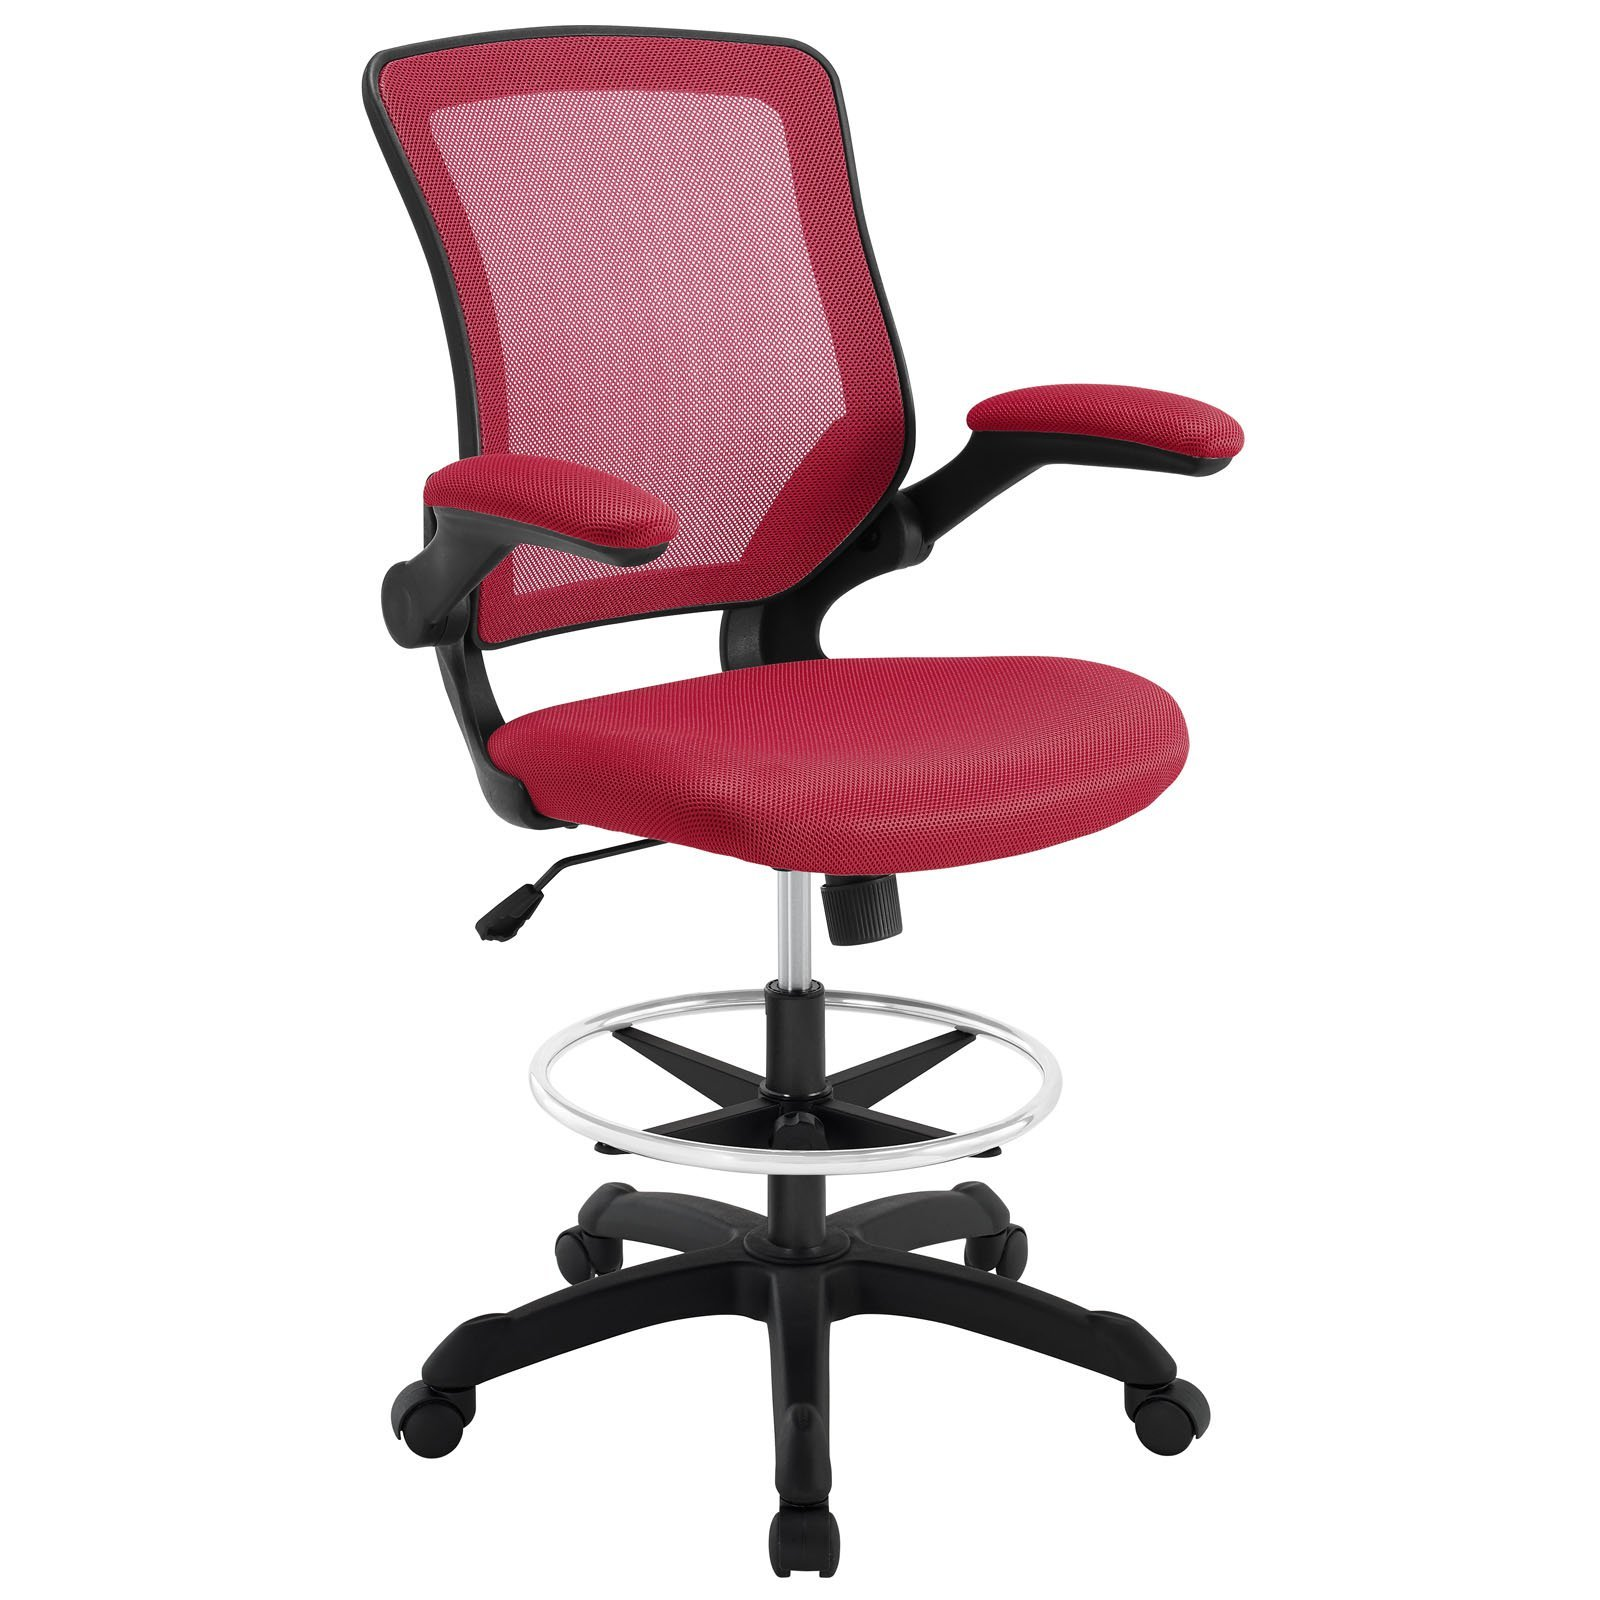 Modway Veer Drafting Chair In Red - Reception Desk Chair - Tall Office Chair For Adjustable Standing Desks - Flip-Up Arm Drafting Table Chair... (Renewed)